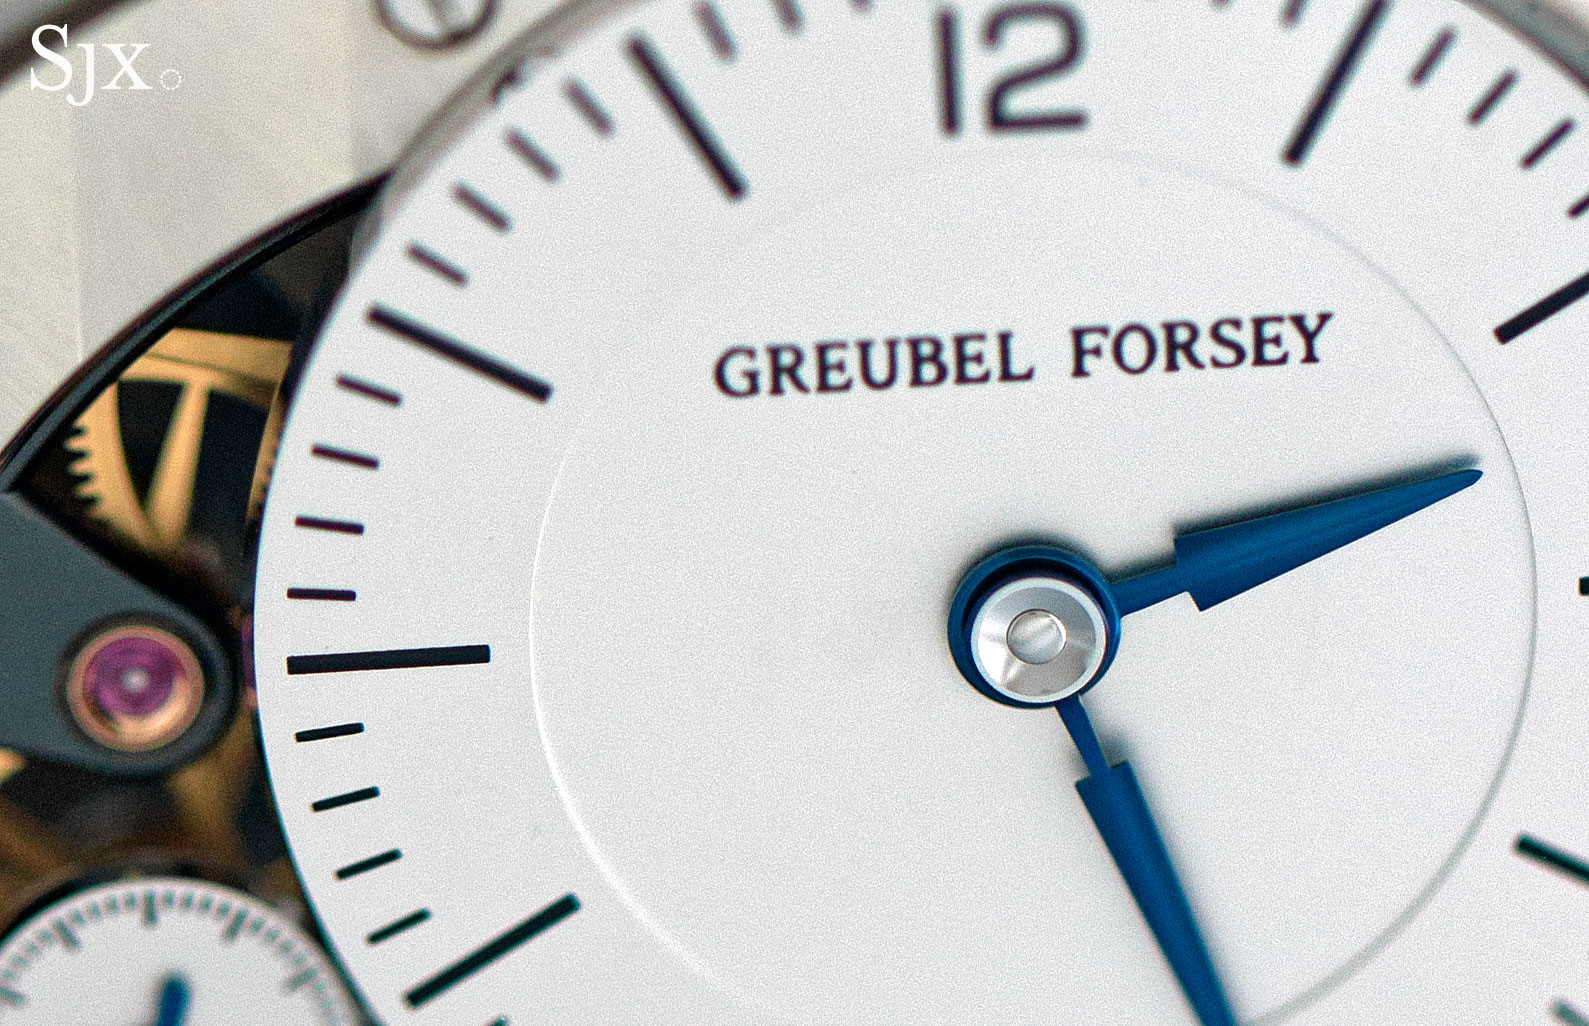 Greubel Forsey Signature 1 stainless steel 3